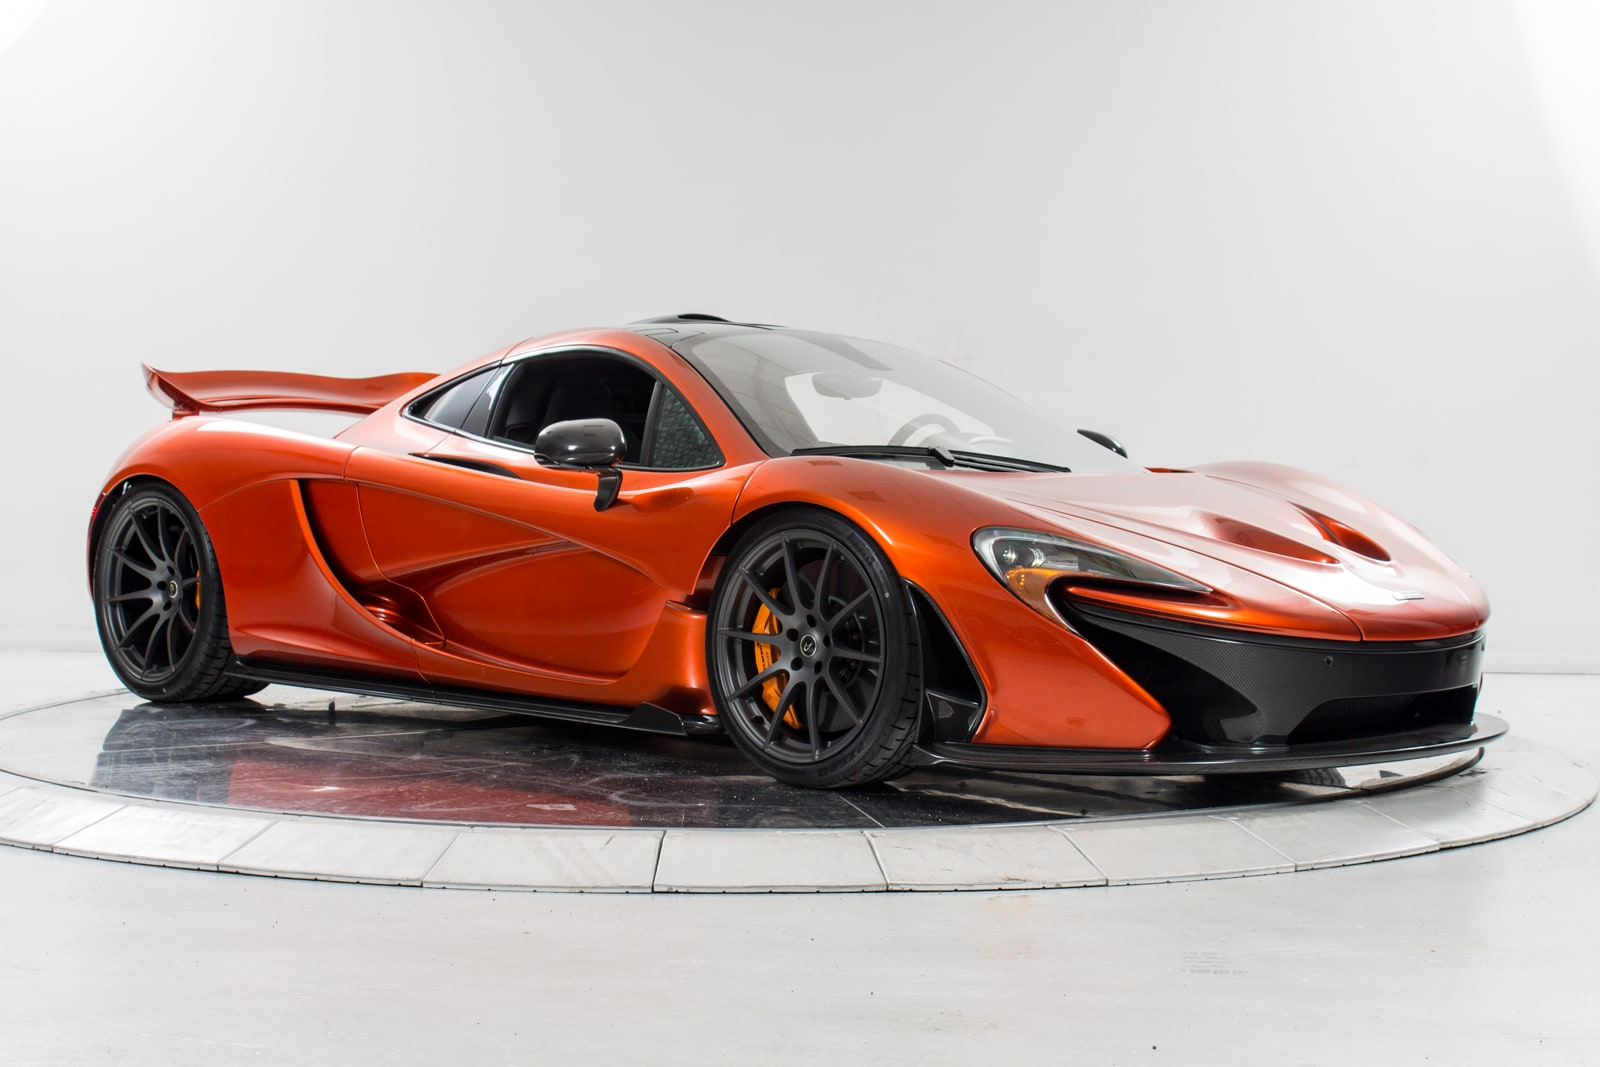 used 2015 mclaren p1 for sale plainview near long island ny vin sbm12aba7fw000312. Black Bedroom Furniture Sets. Home Design Ideas